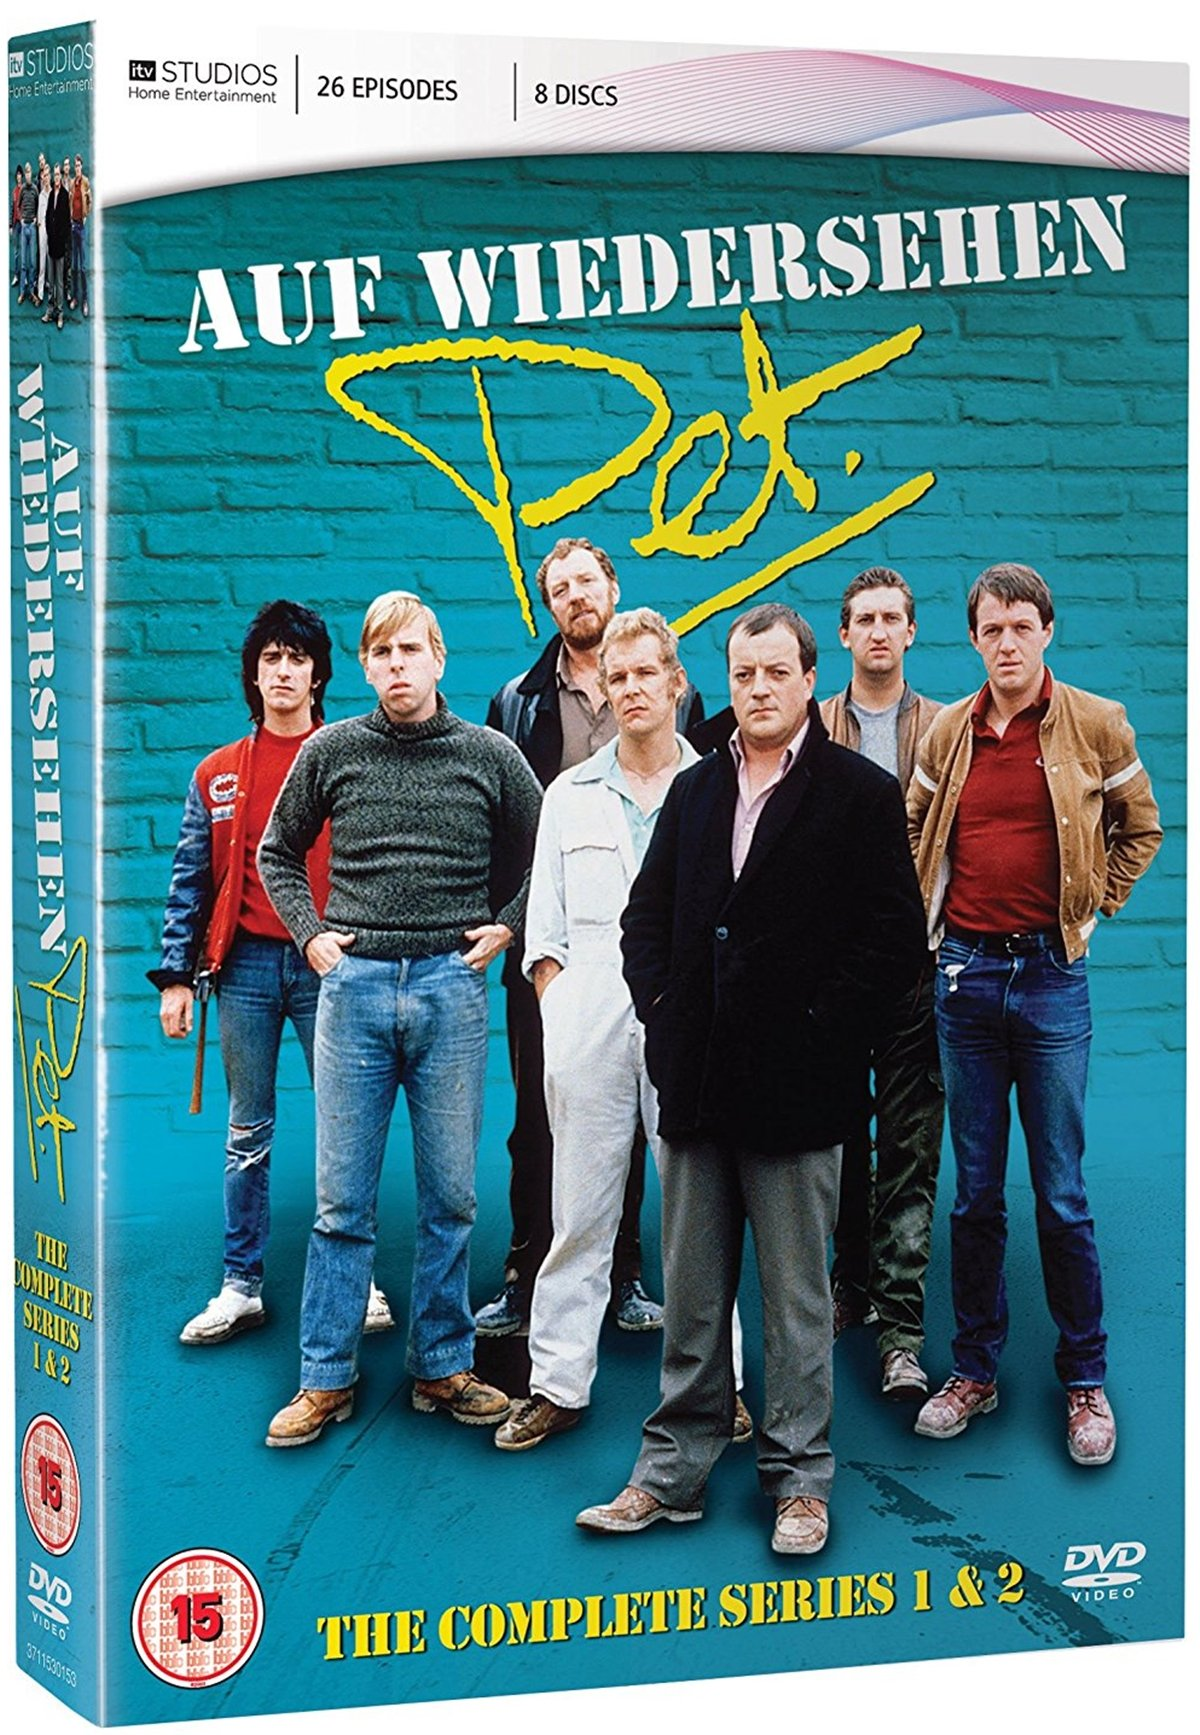 14 16 21 Things You Probably Didn't Know About Auf Wiedersehen, Pet